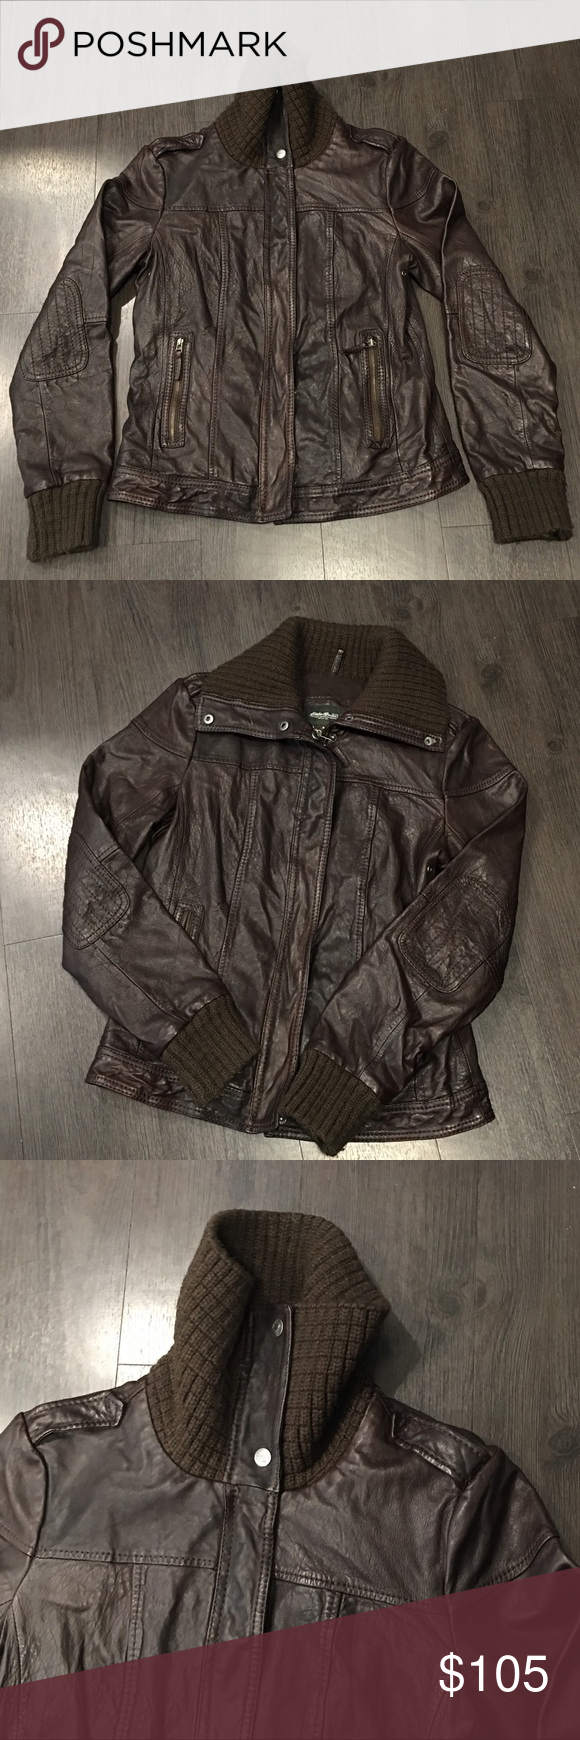 Vintage leather bomber jacket sz small Leather bomber